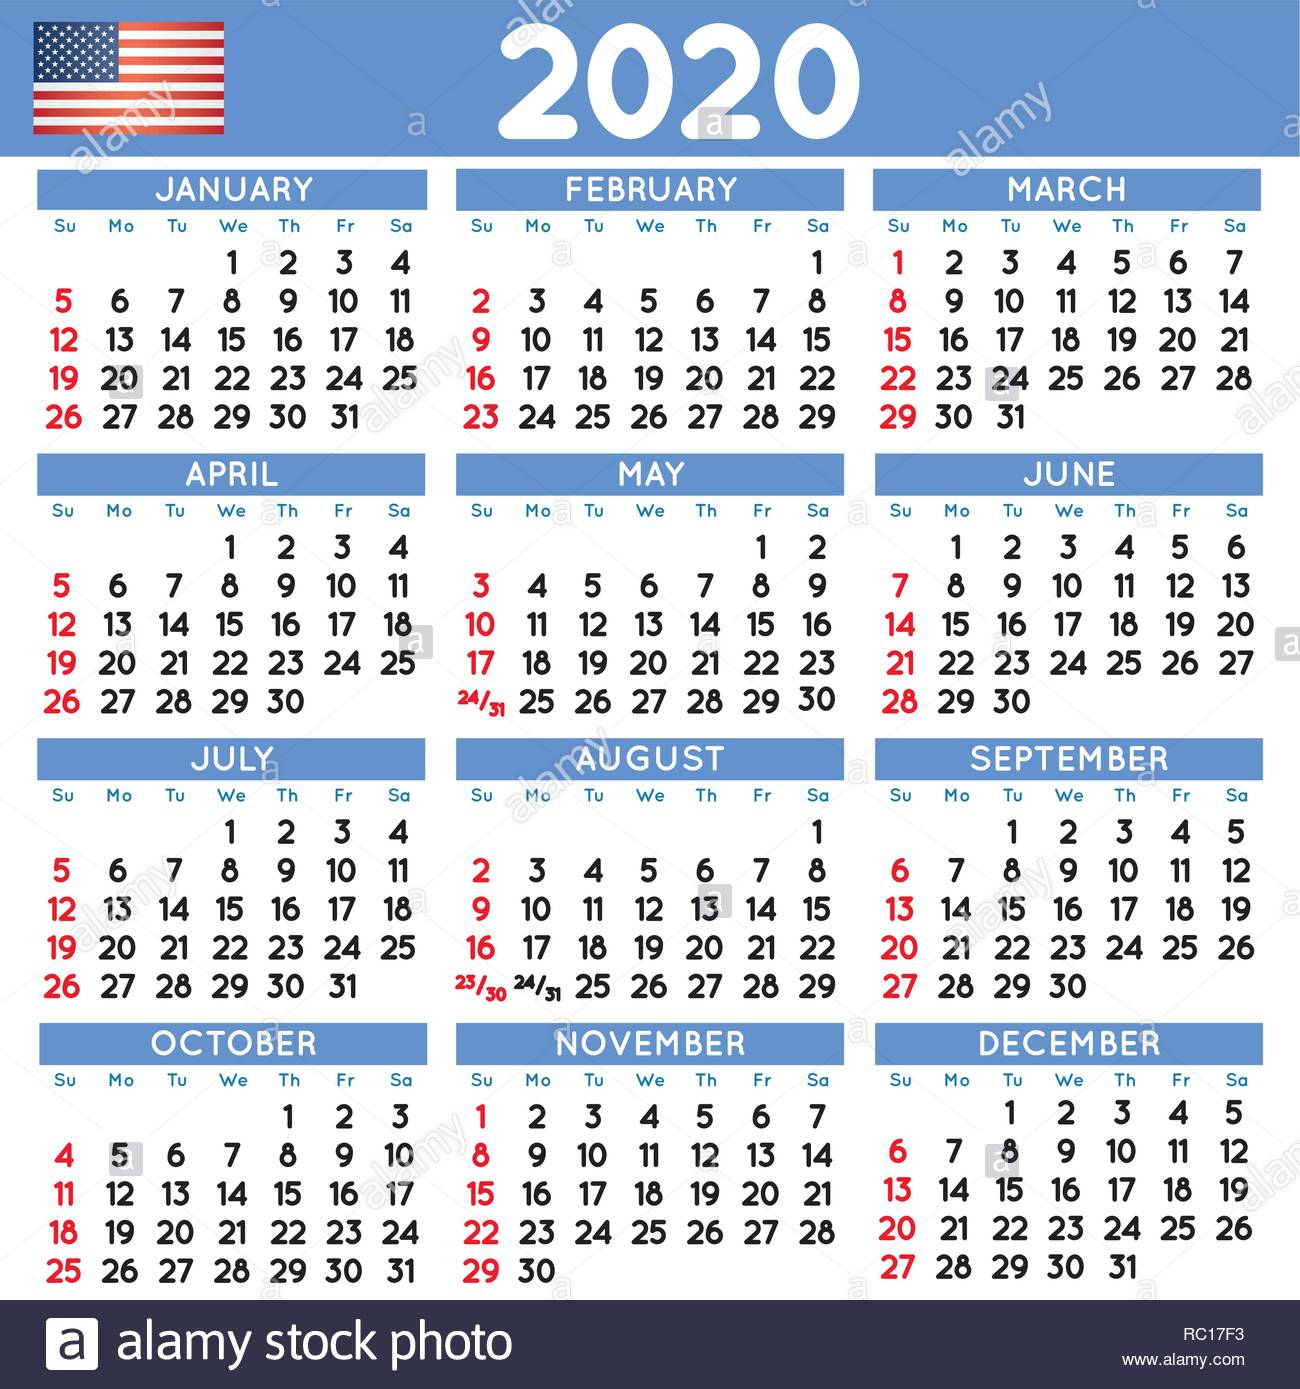 2020 Calendar Usa 2020 elegant squared calendar english USA. Year 2020 calendar